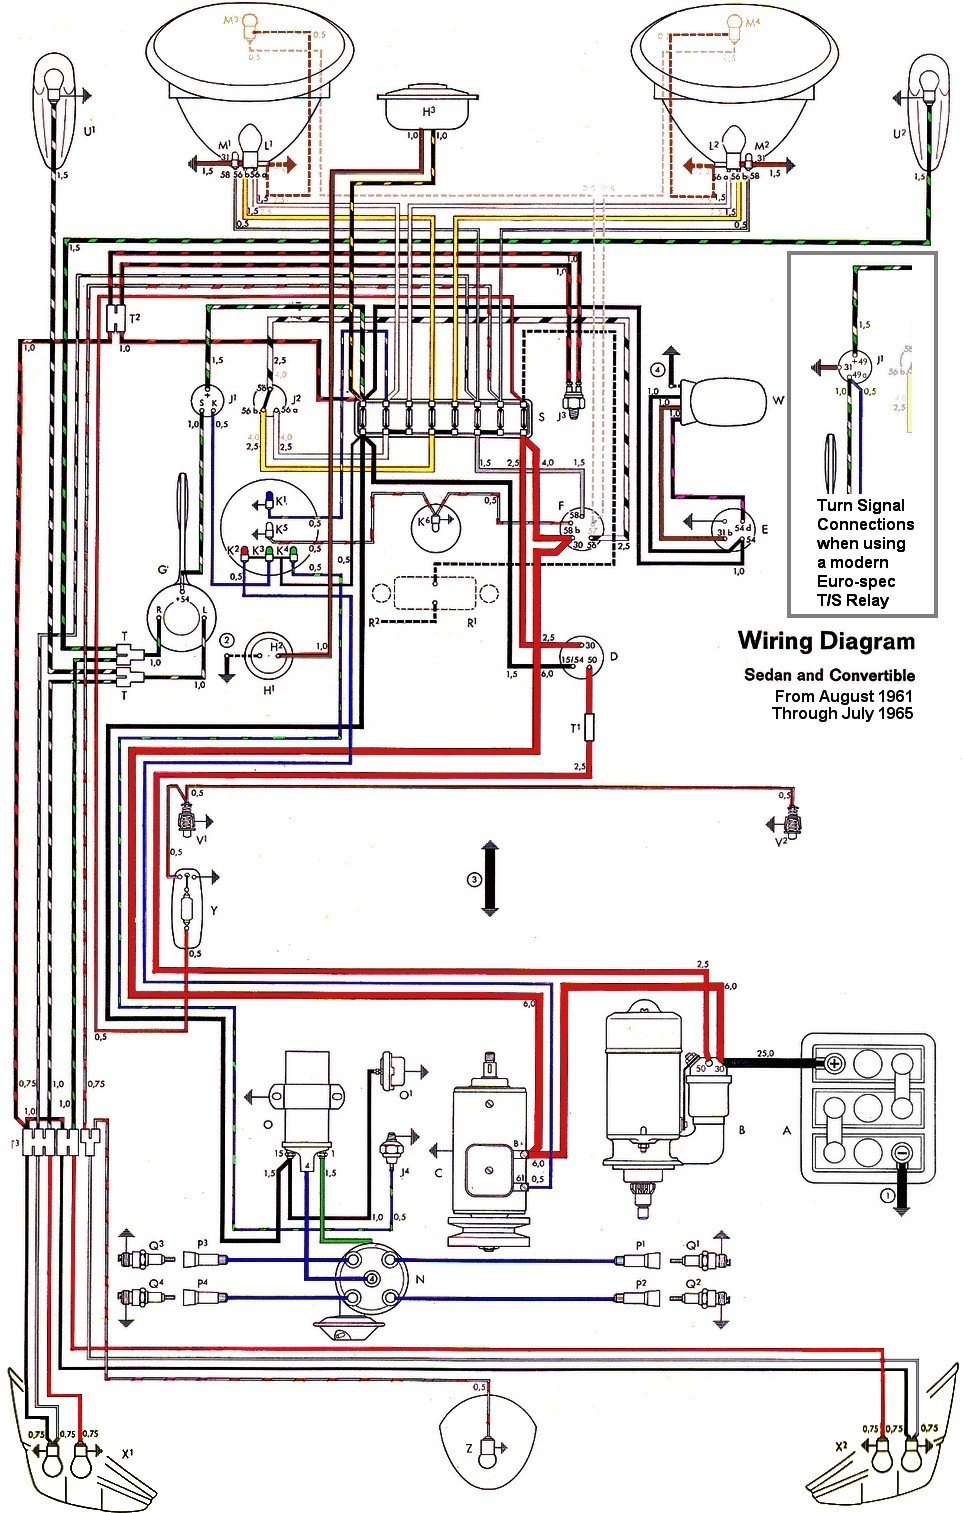 Vintage Vw Wiring Harness Layout Diagrams Kits For Old Cars Free Download Bug Experts Of Diagram U2022 Rh Evilcloud Co Uk Beetle Bus Regulator